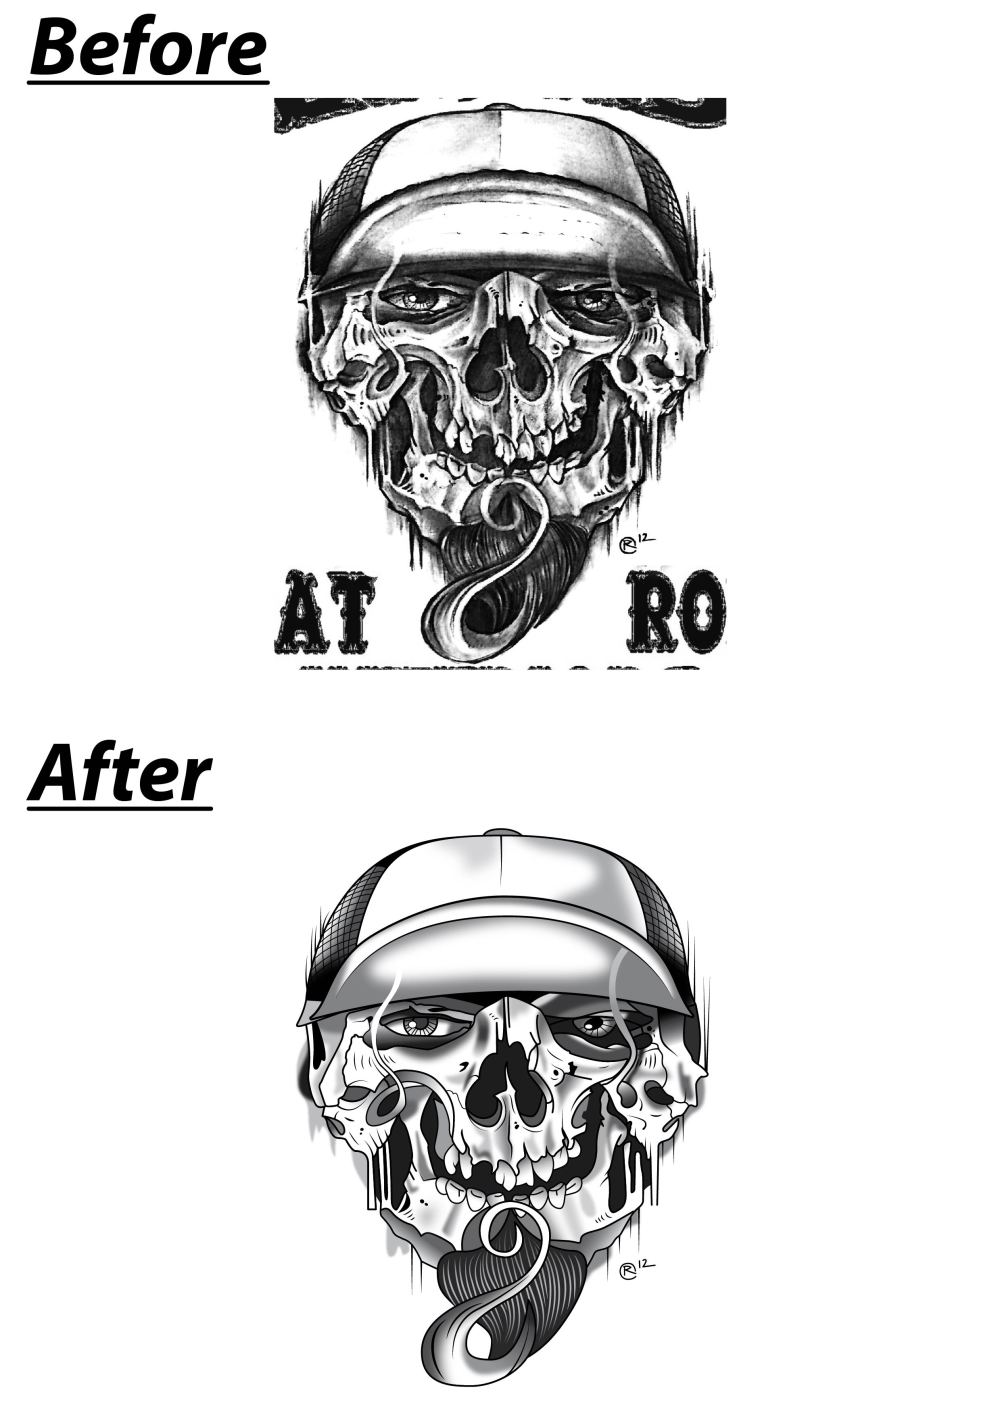 Vector images, Vector based images, and Vector illustration